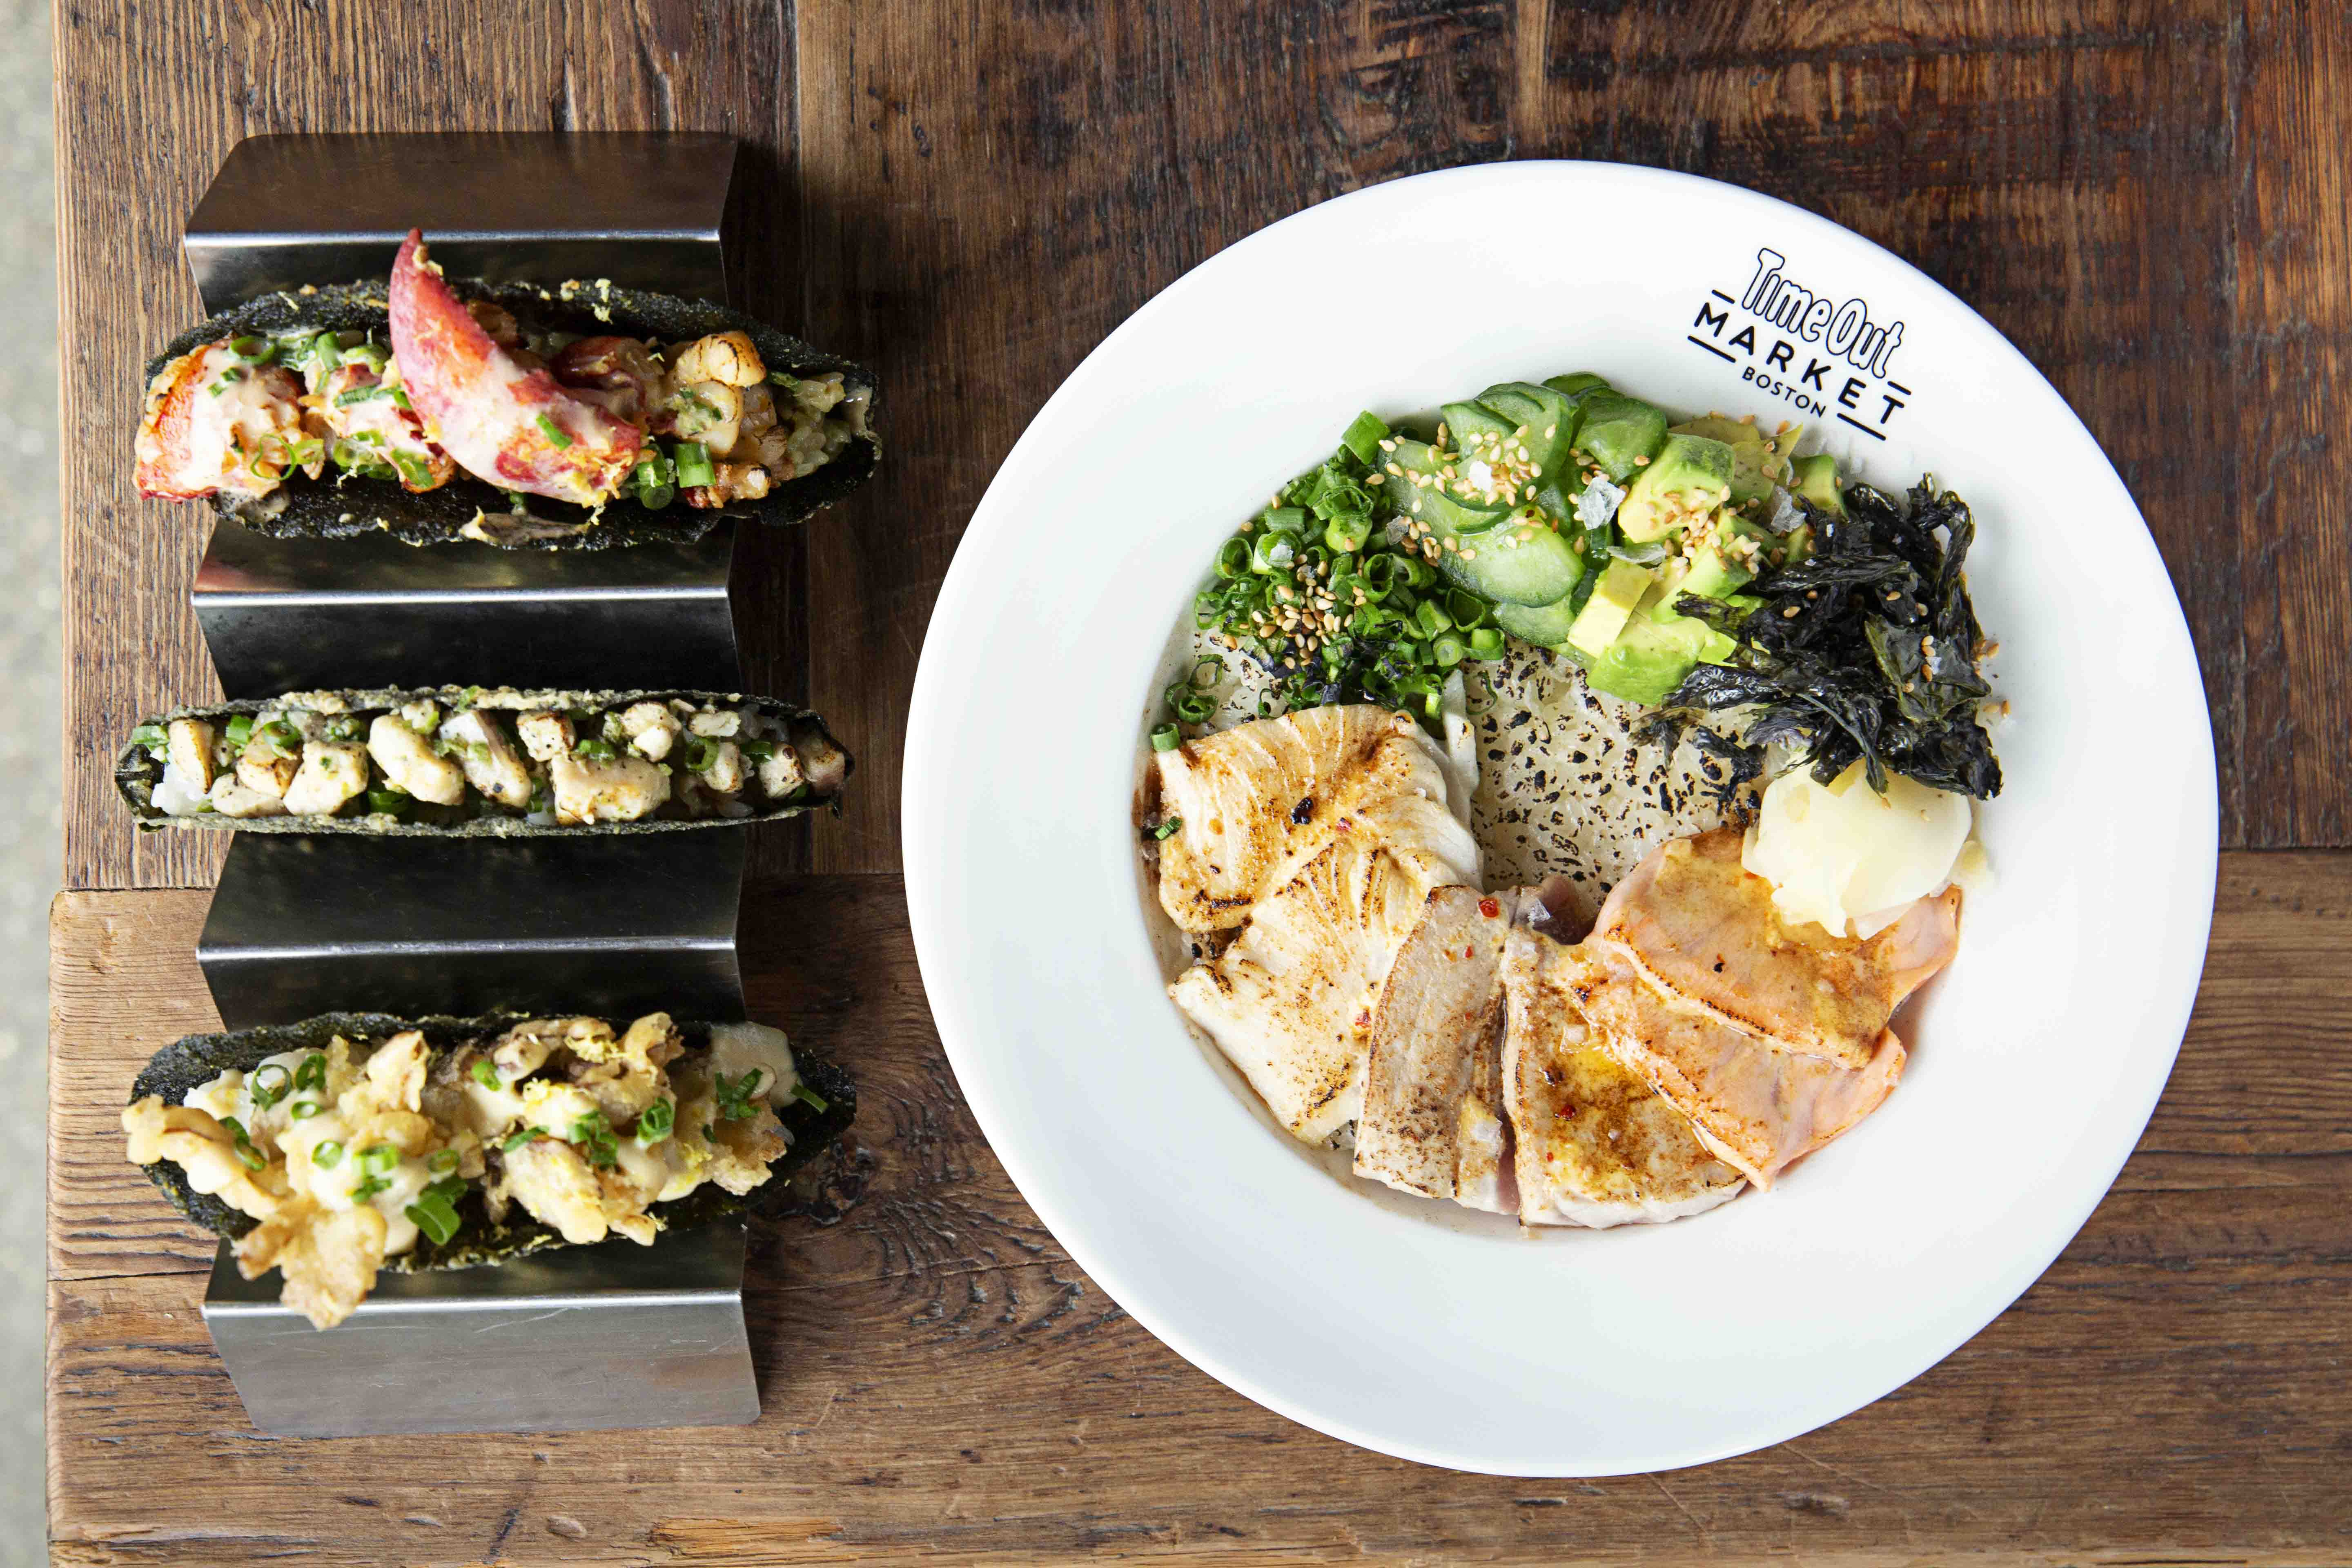 overhead view of a meal on a wooden table: three tacos in crispy nori shells stand up in a taco holder, and a bowl is full of rice, greens, and torched sashimi